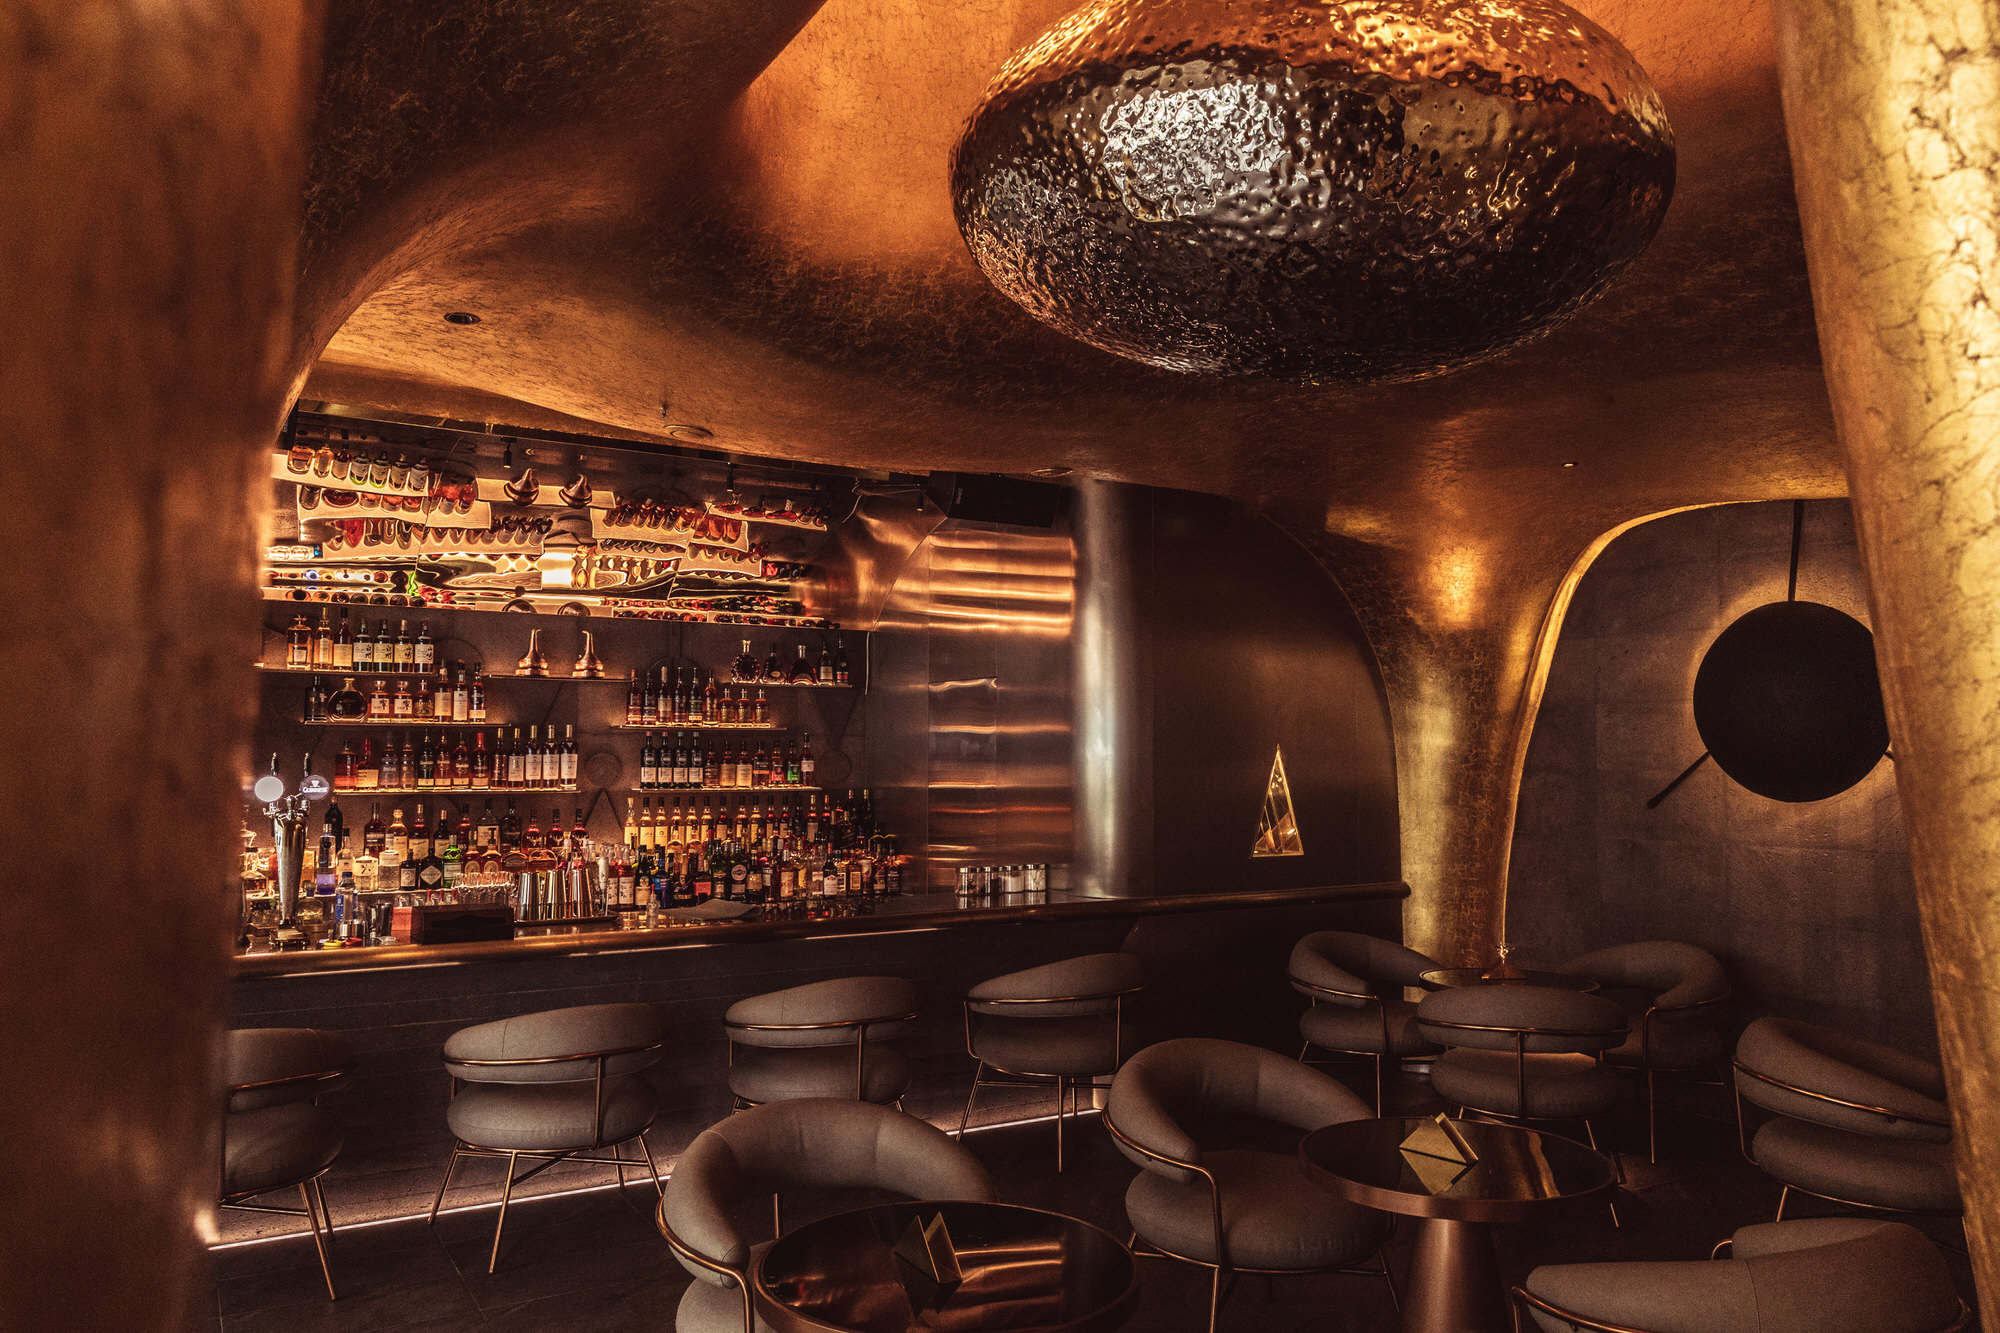 Wooton Designers, Inns Bar Chengdu China, Hospitality Design | Yellowtrace